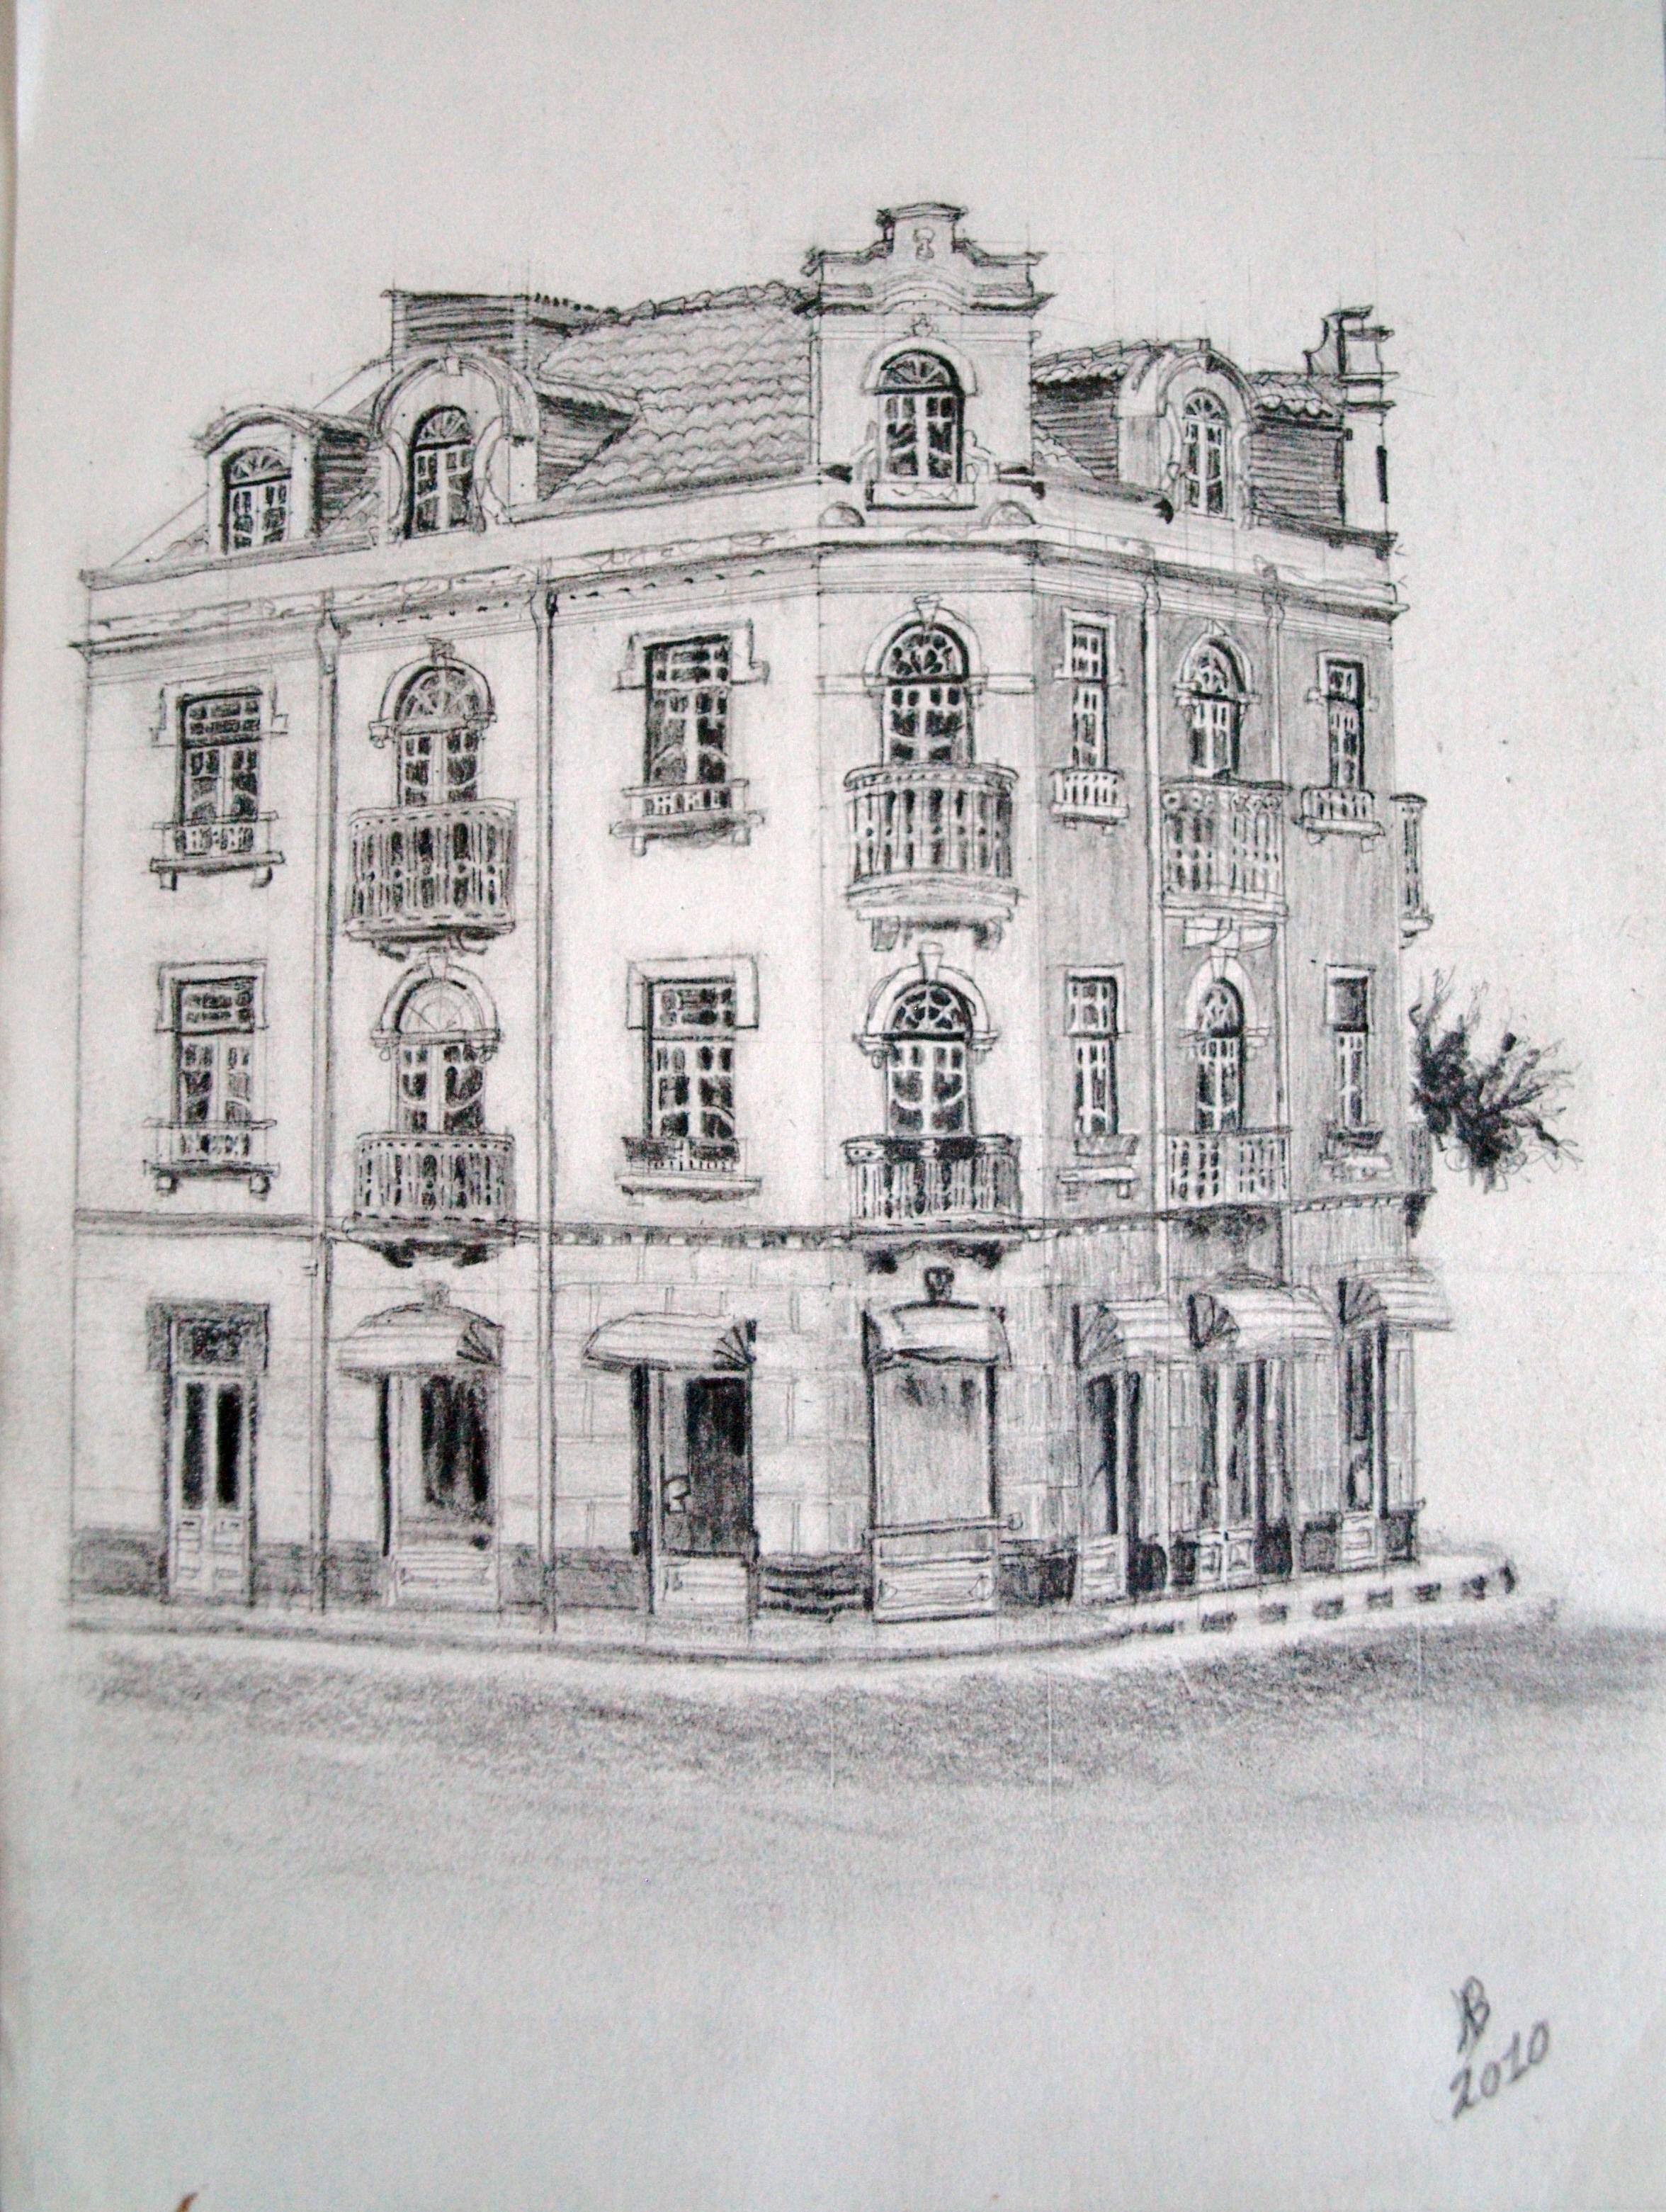 2010 Art Deco Building Drawing Pencil 21 x 30cm